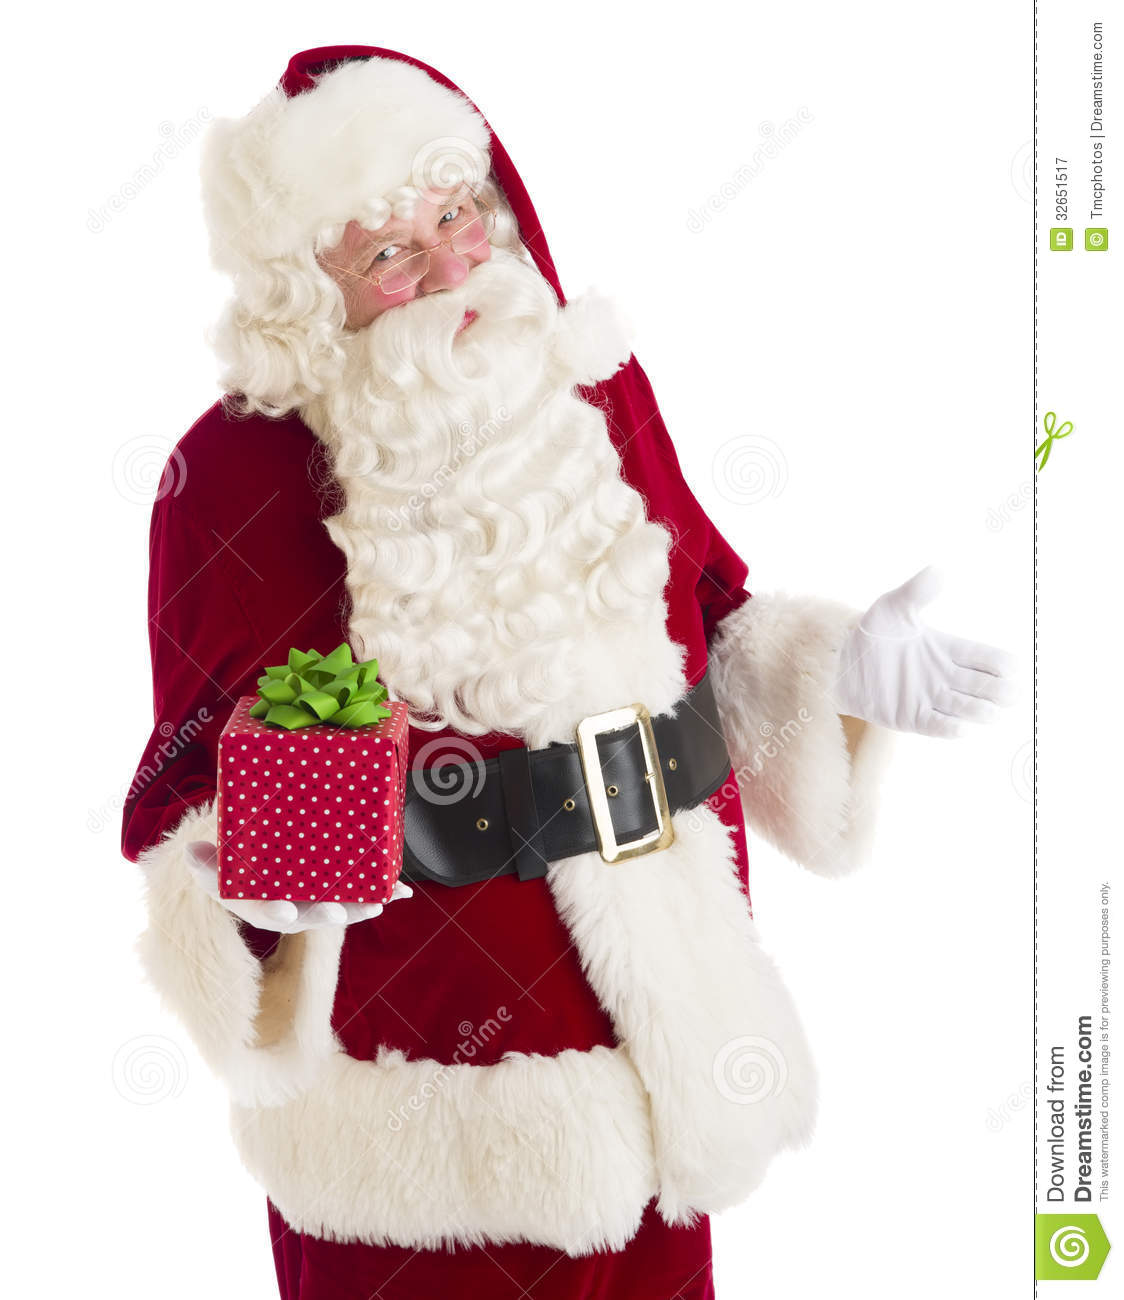 Santa claus gesturing while holding gift box stock image